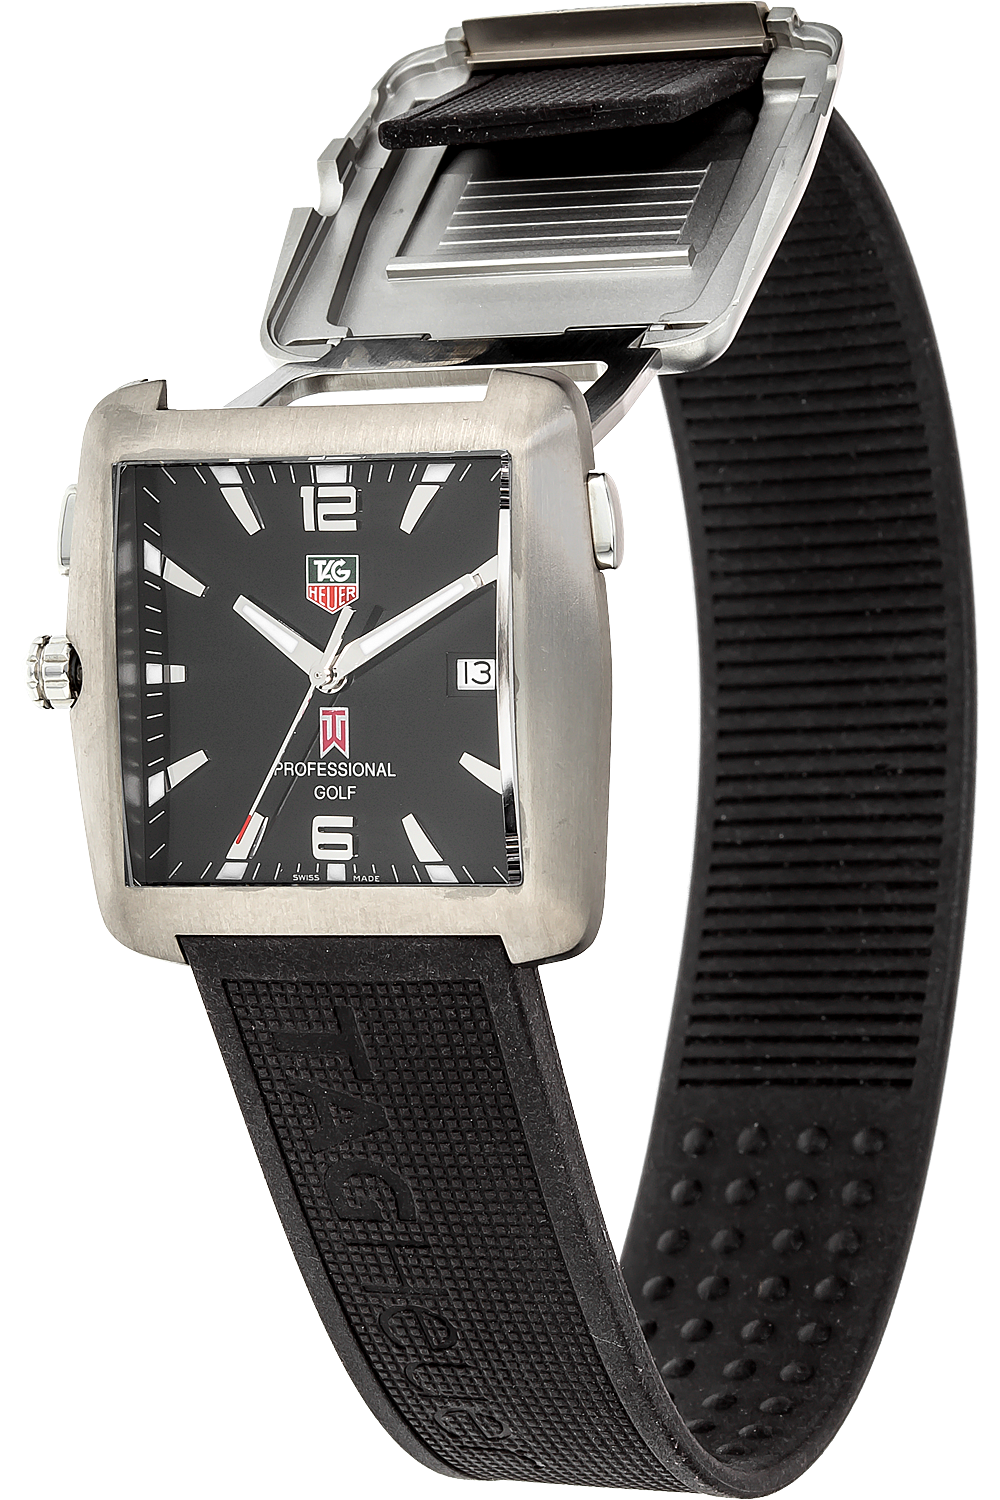 Pre Owned Tag Heuer Professional Golf Tiger Woods Limited